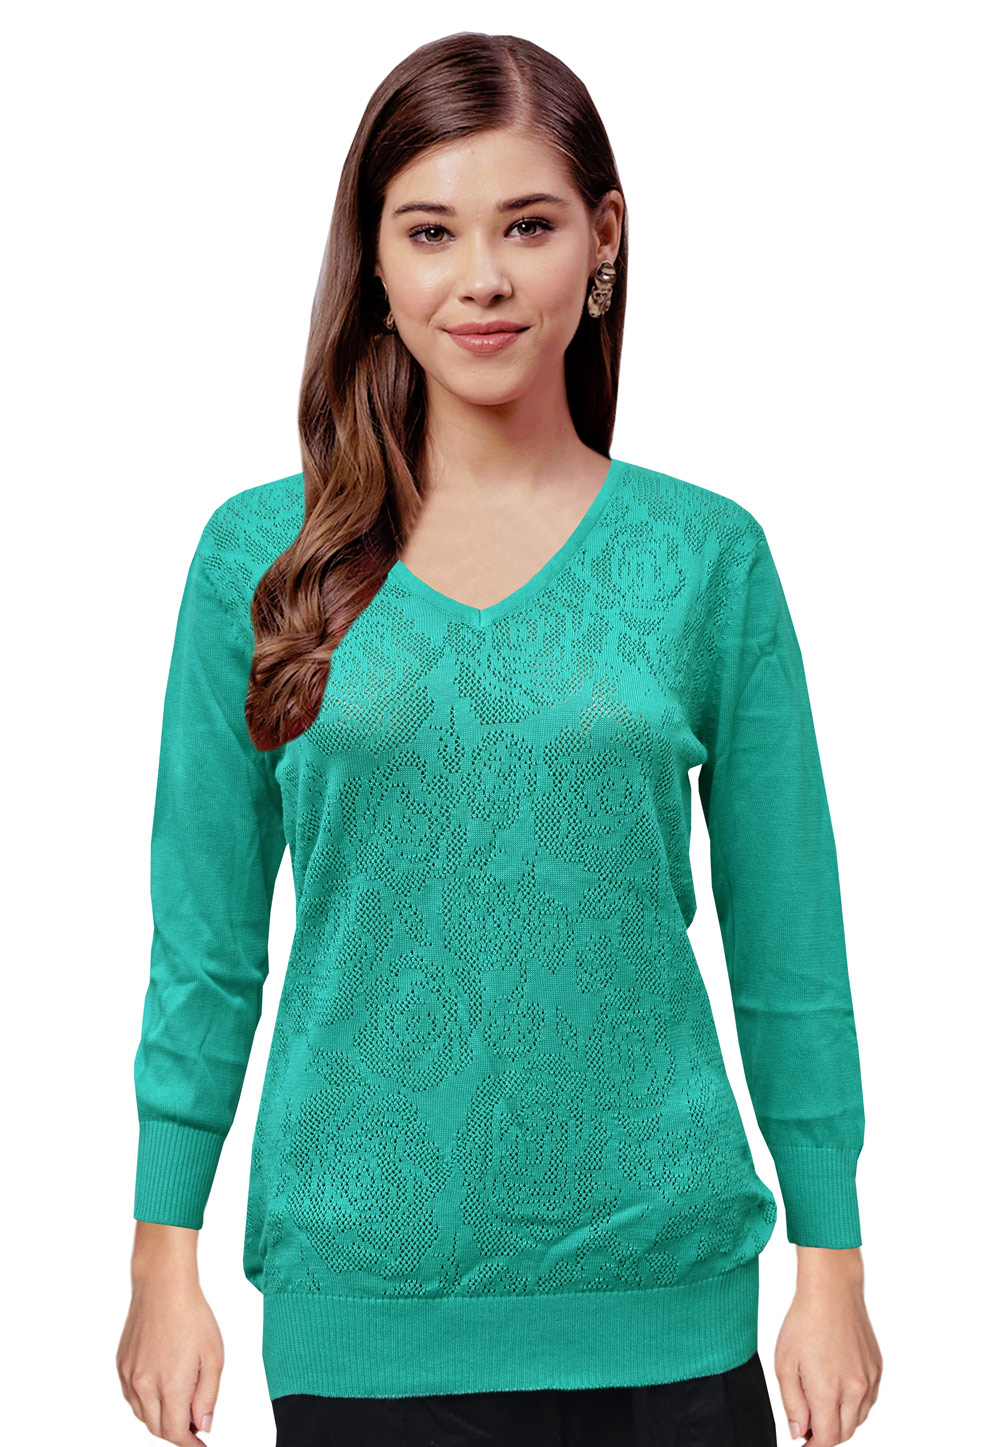 Turquoise Woolen Knitted Sweater Tops 214255